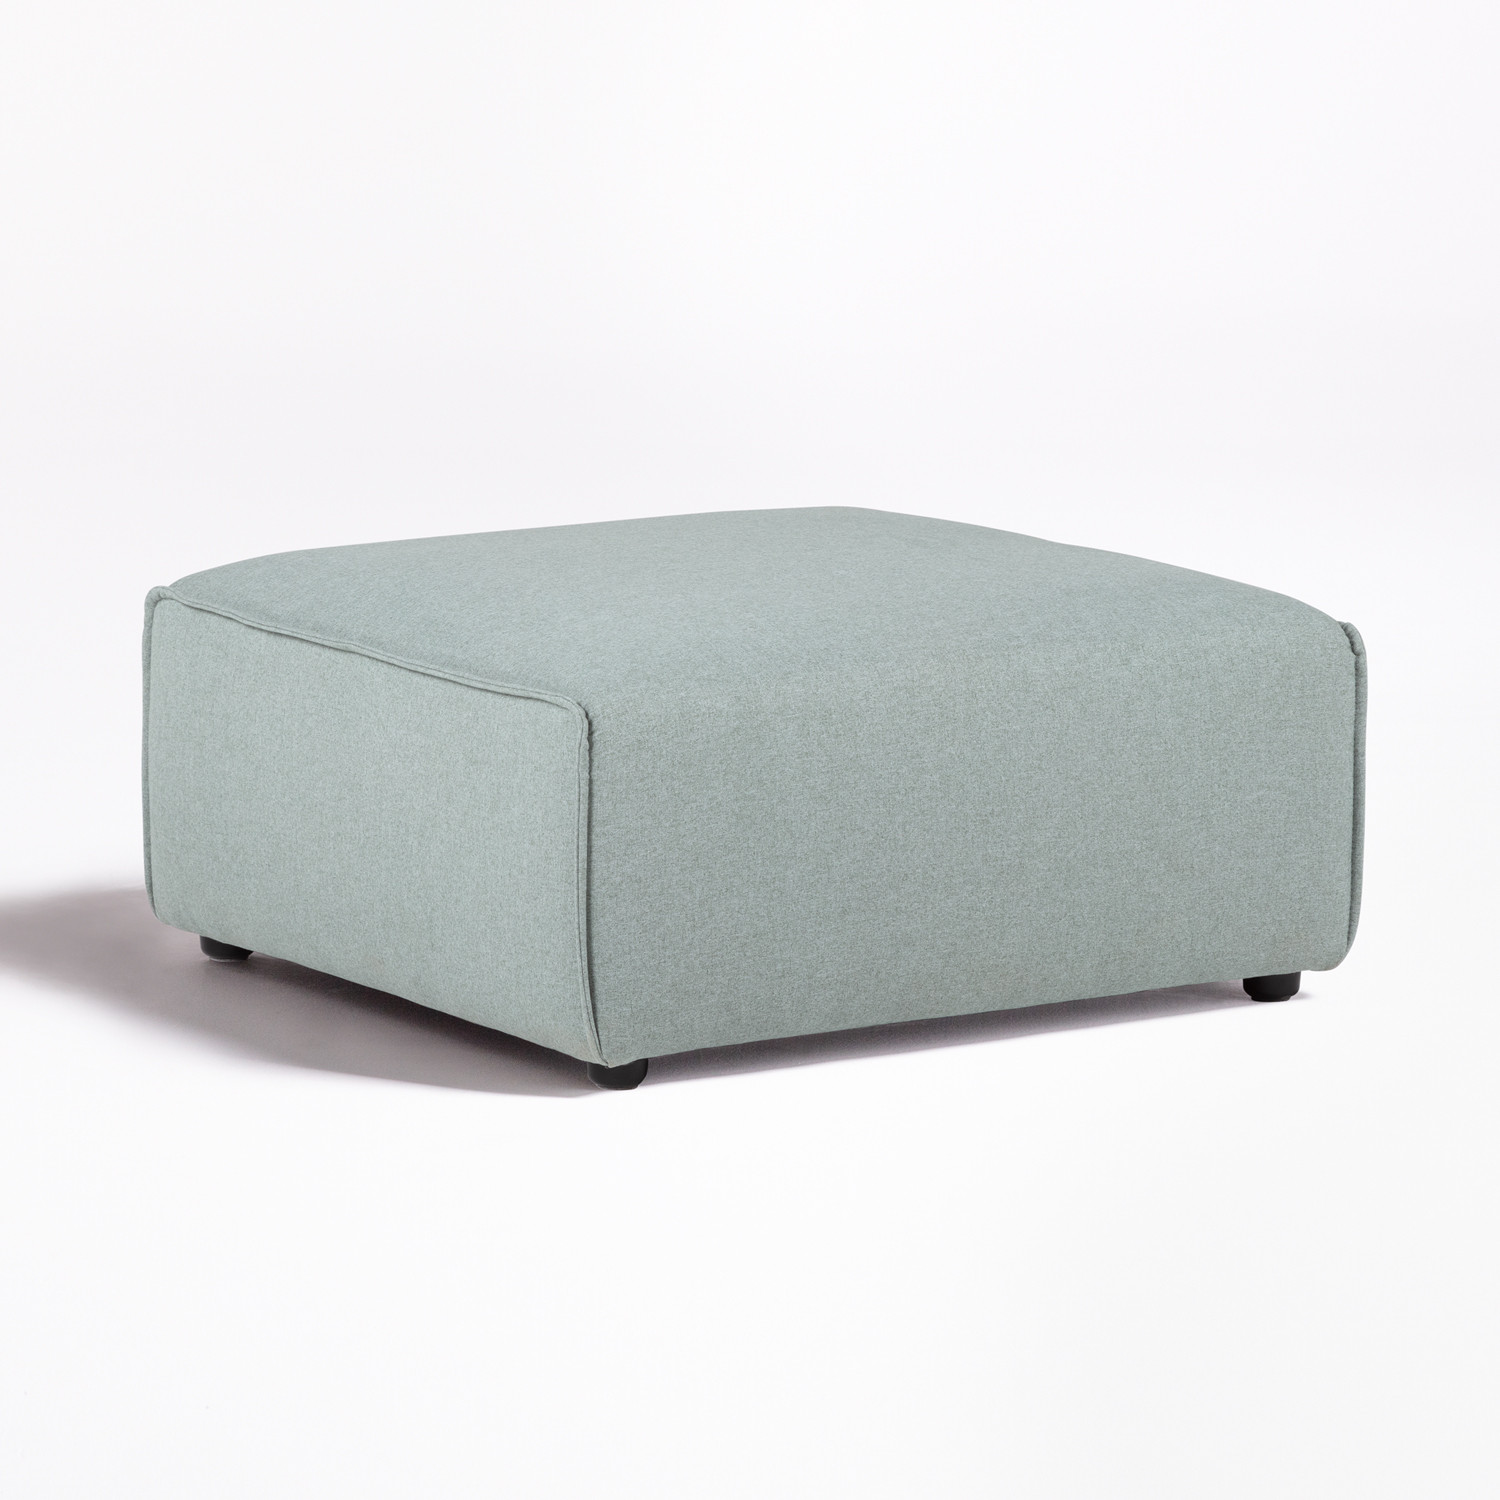 Chaise Longe for Aremy Modular Sofa, gallery image 1